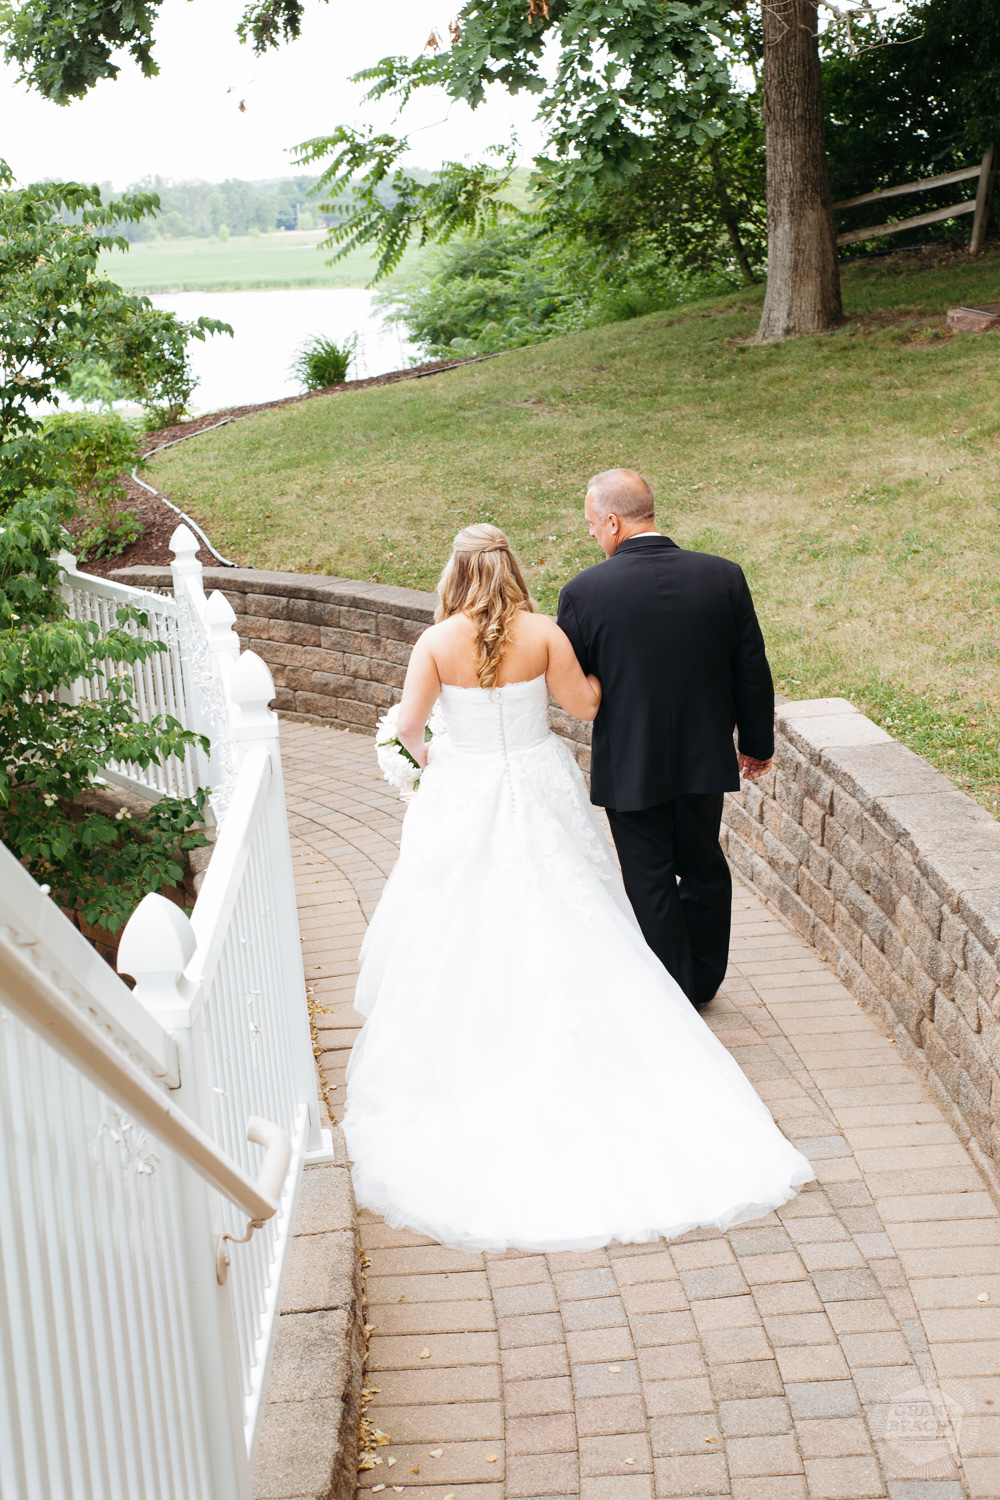 Grant Beachy wedding photography southbend goshen chicago-30.jpg